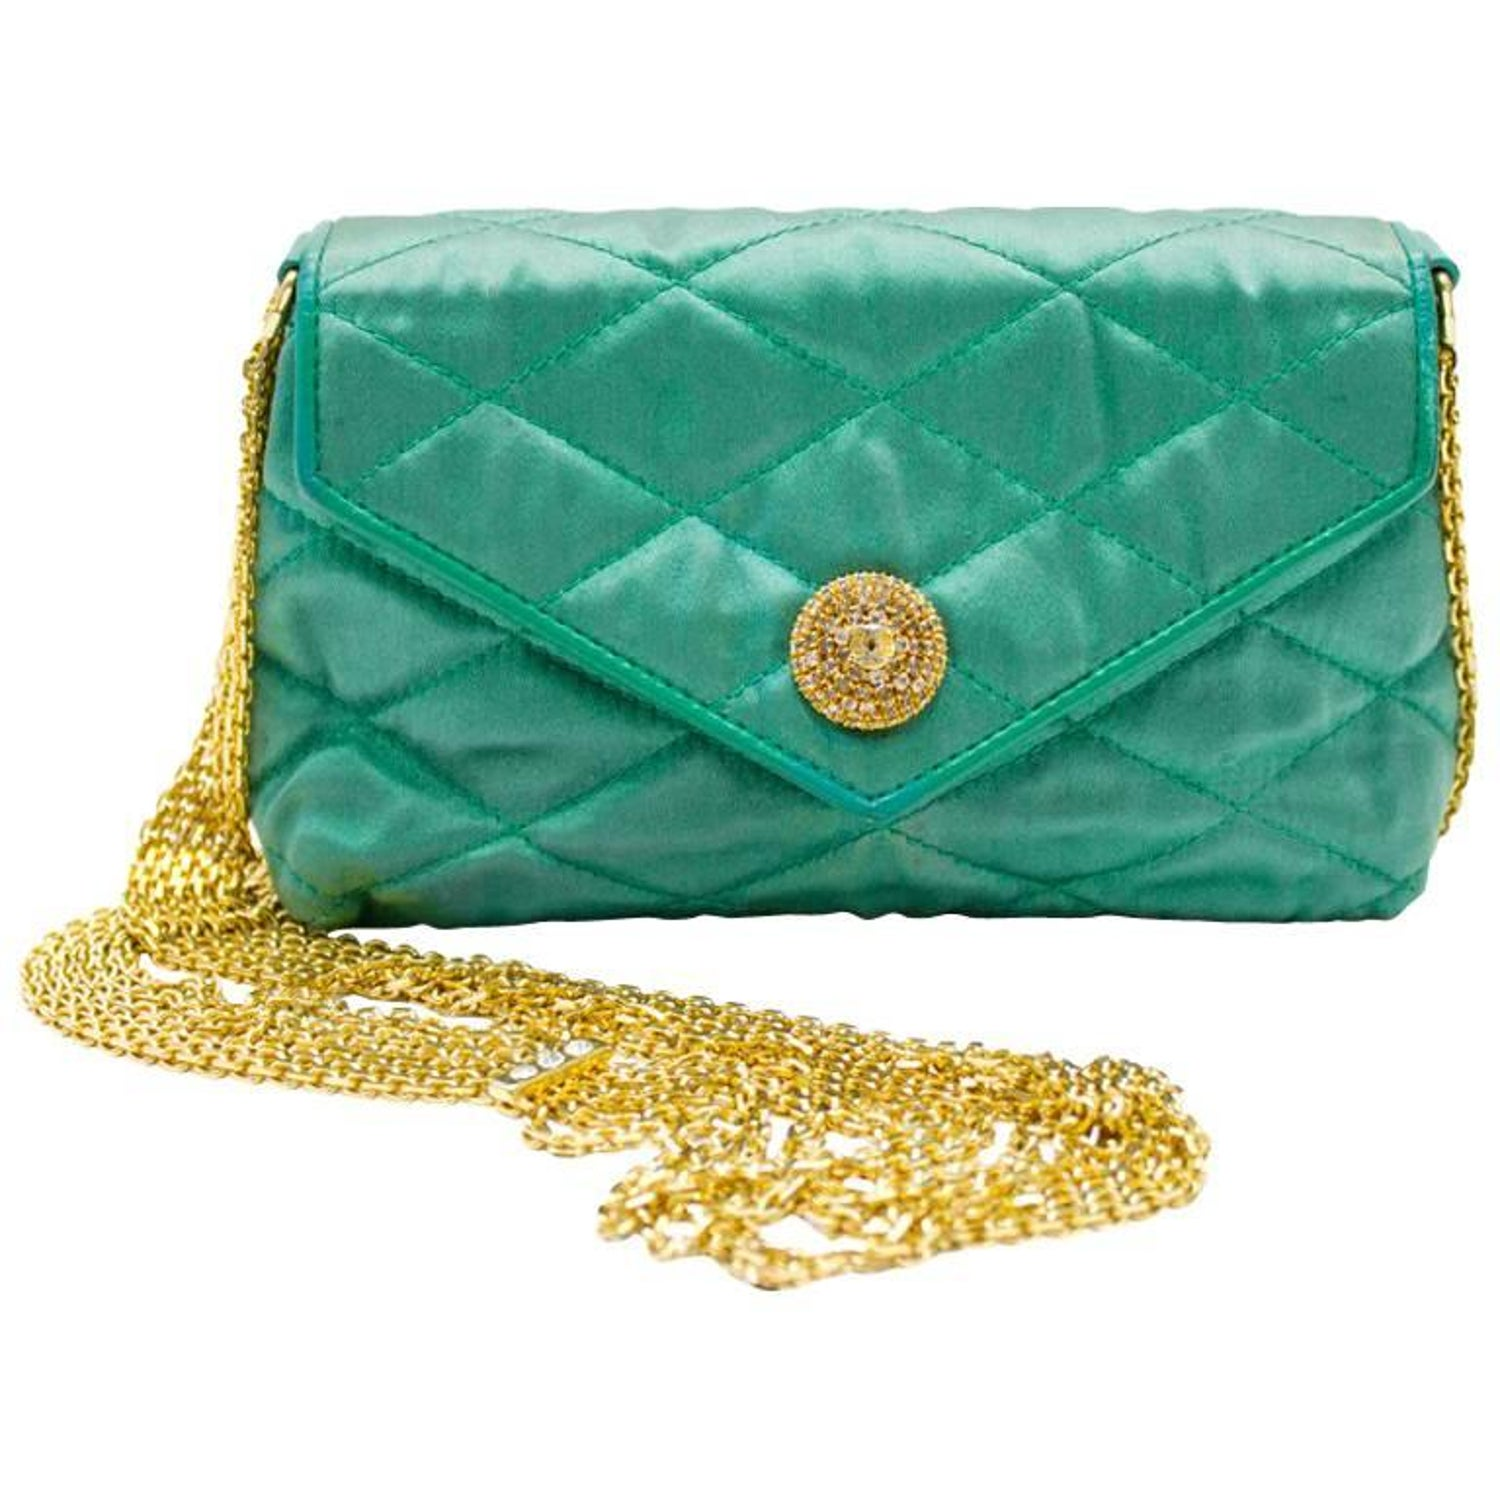 5754410b06ca 1980s Chanel Emerald Green Silk Bag with Gold Chain at 1stdibs